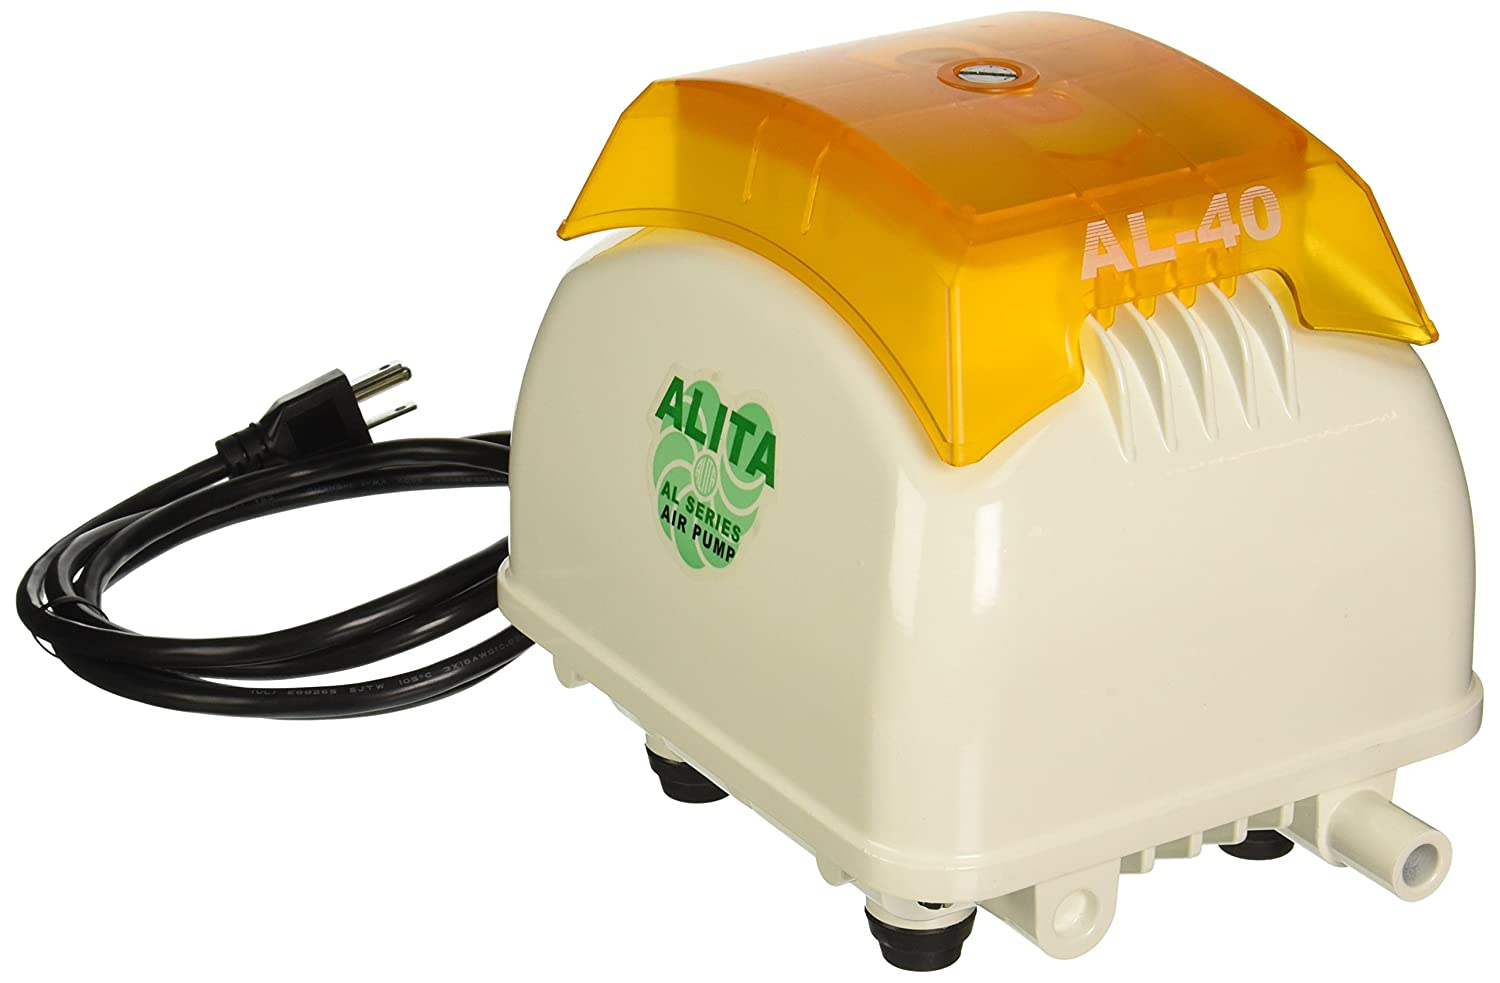 ALITA INDUSTRIES Air Pump, 40 LPM